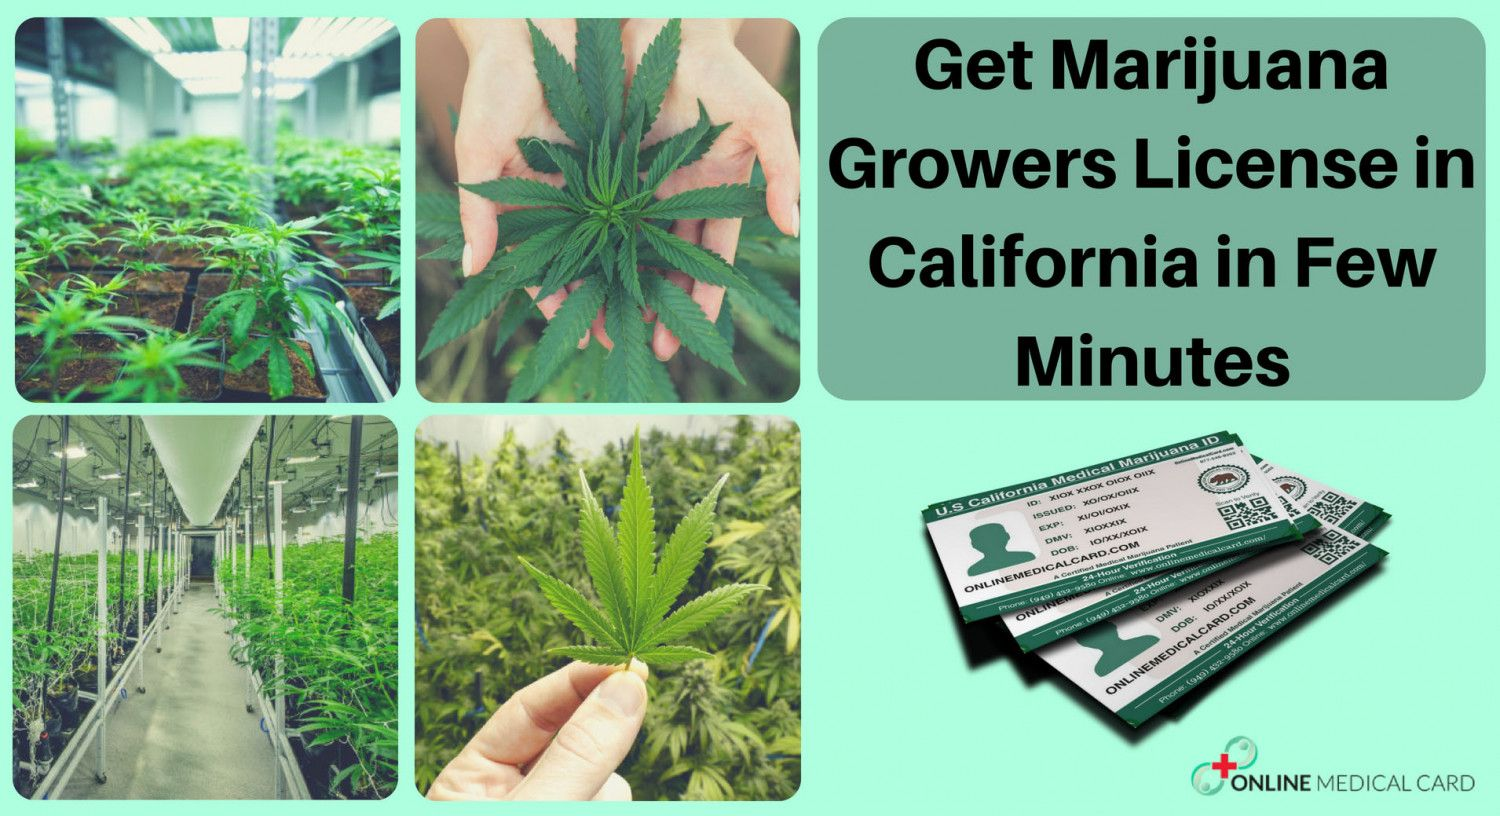 Need to increase your #grow limit? Get a #growers